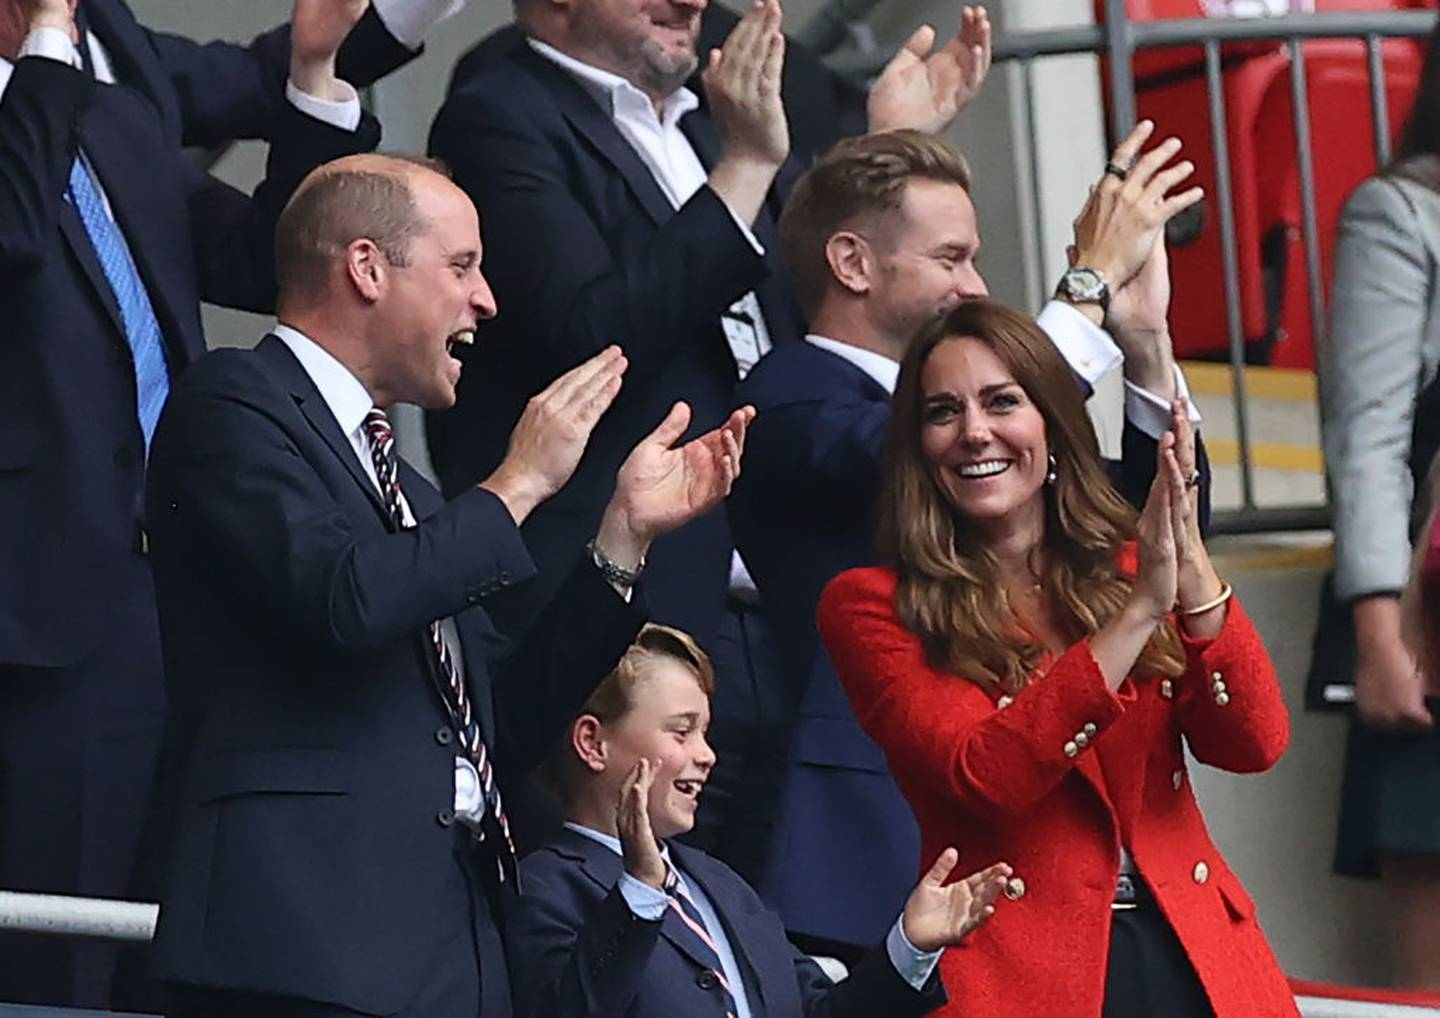 Prince George and his parents celebrate England's goal in the Euro 2020 final at Wembley